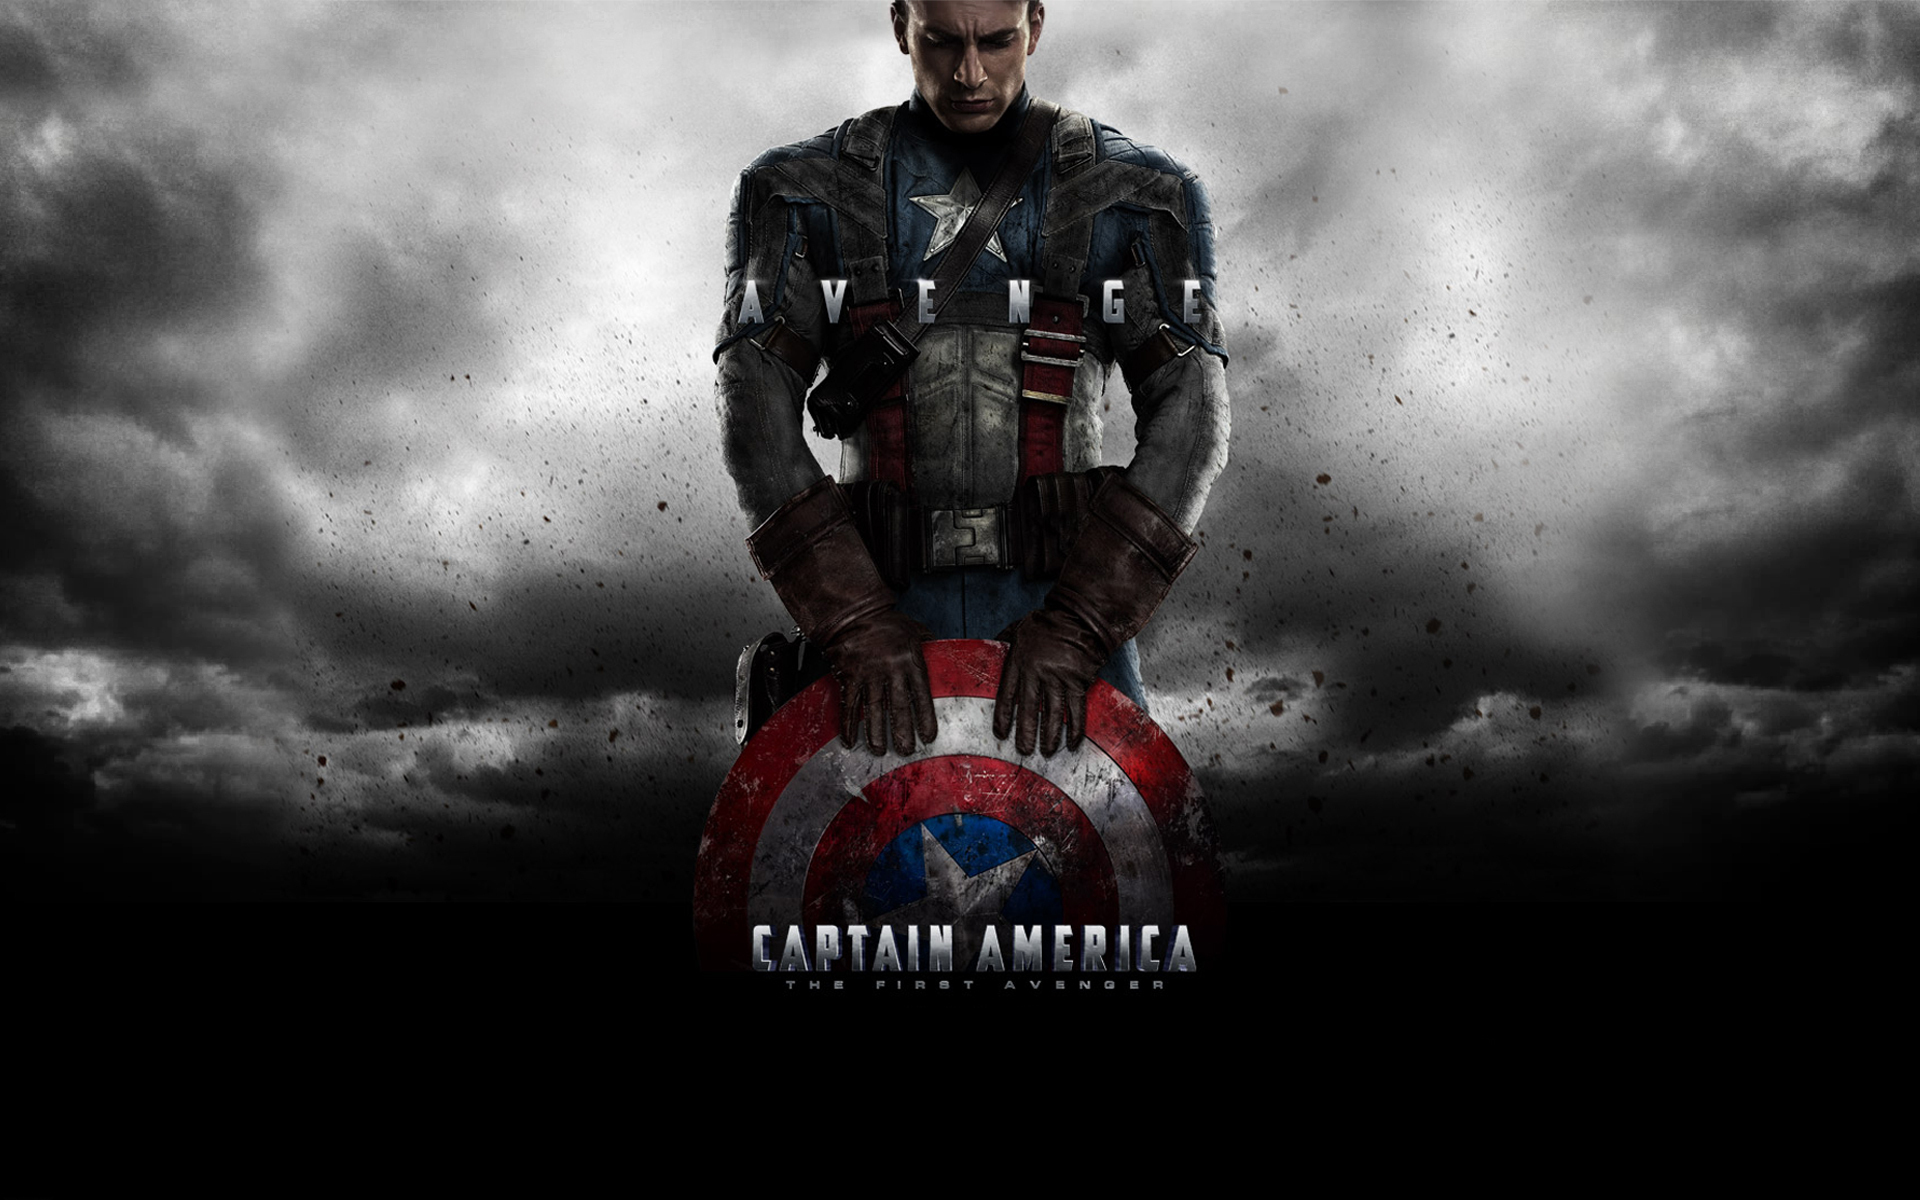 Captain-America-The-First-Avenger-captain-america-the-first-avenger